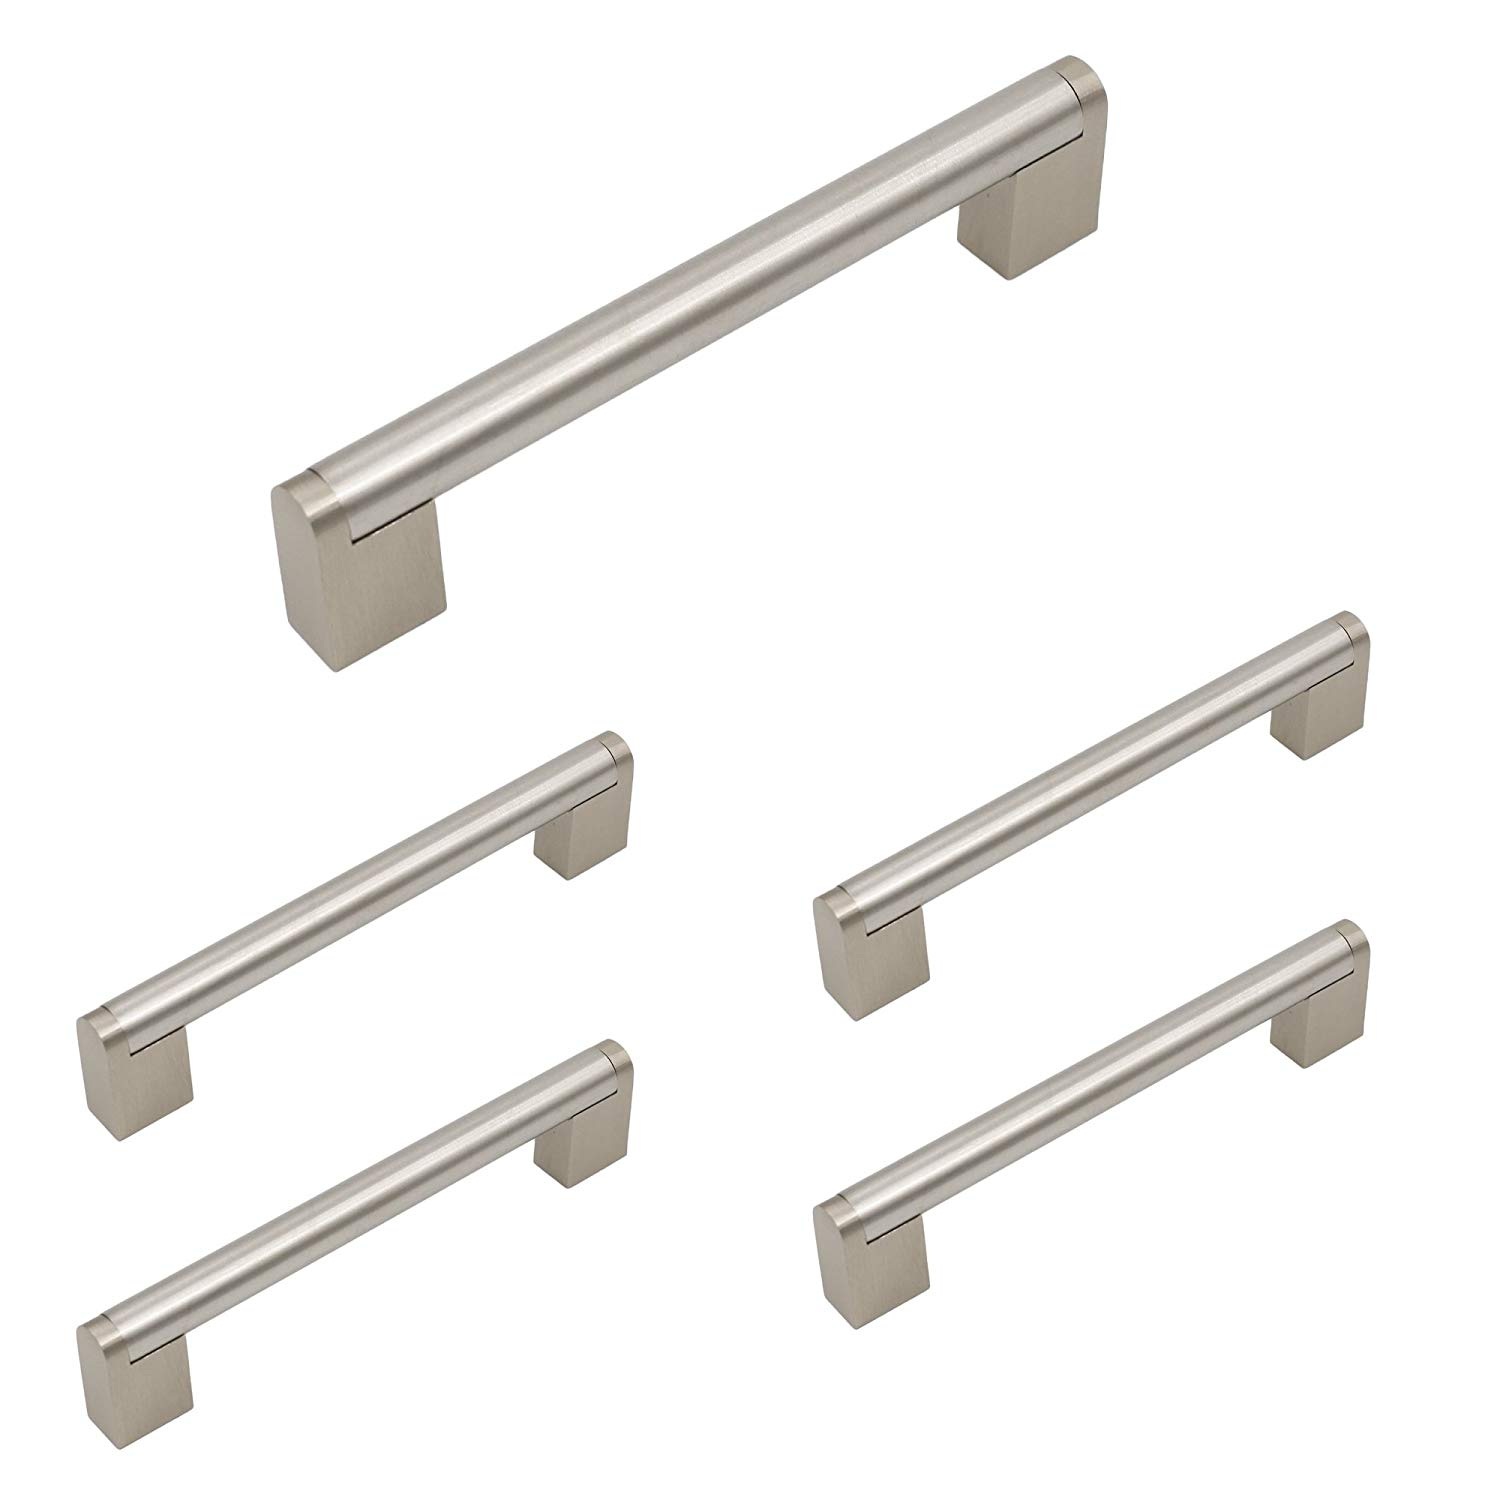 Homidy Kitchen Cabinet Door Handles Brushed Nickel 128mm(5 inch) Hole Centers Modern Boss Bar Cabinet Pulls and Knobs 5 Pack